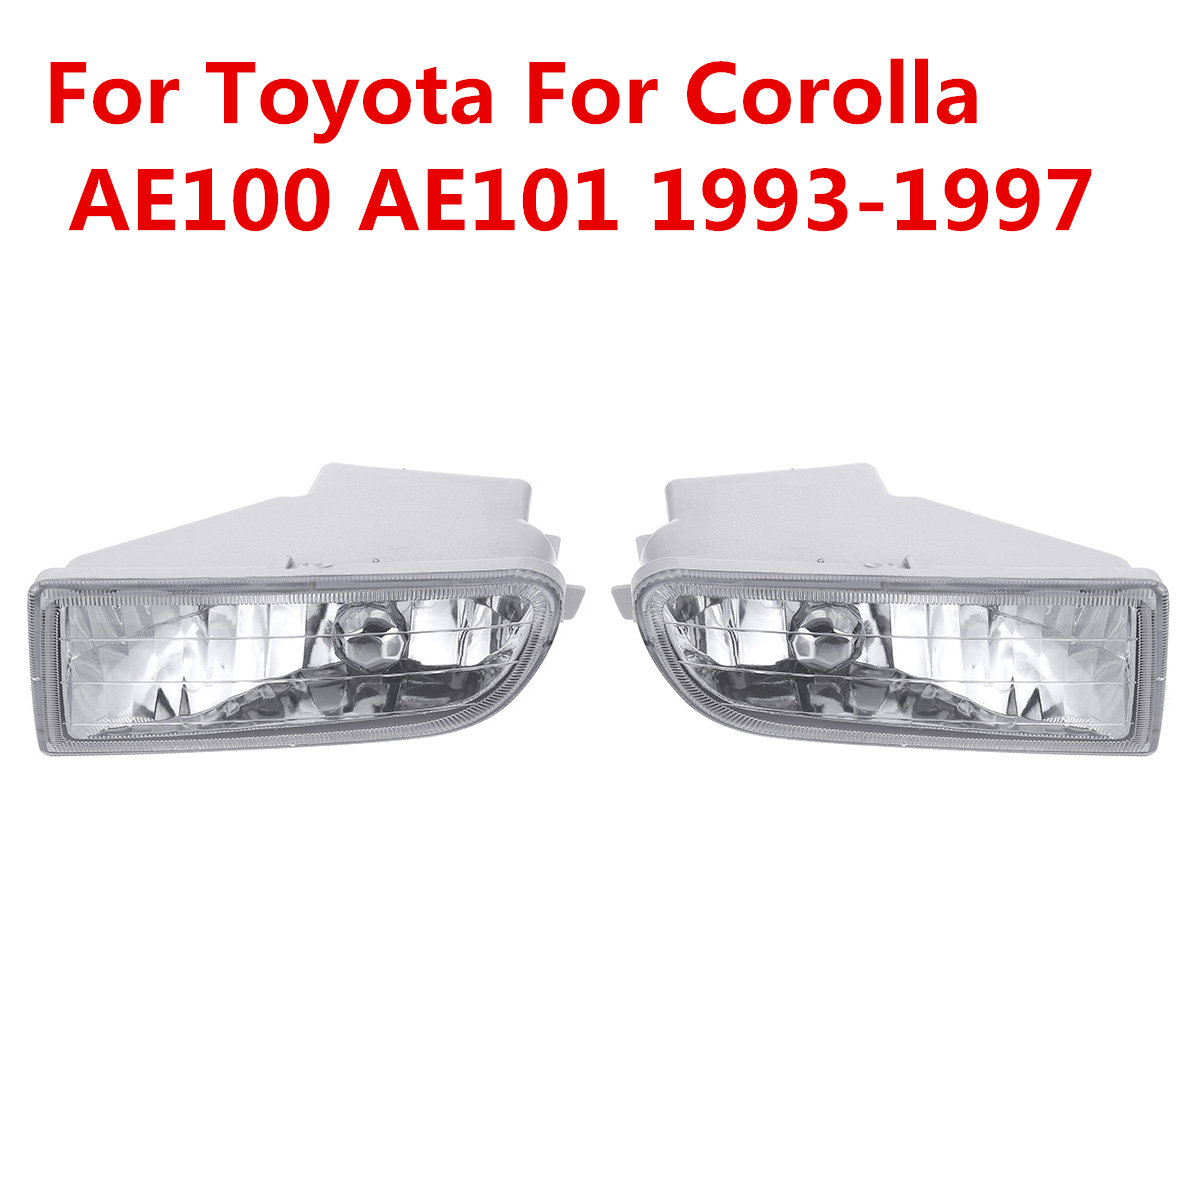 New 2x Car Stying Front Fog Light LED Fog Lamp LED For Toyota For Corolla AE100 AE101 1993 1997 A1649060451